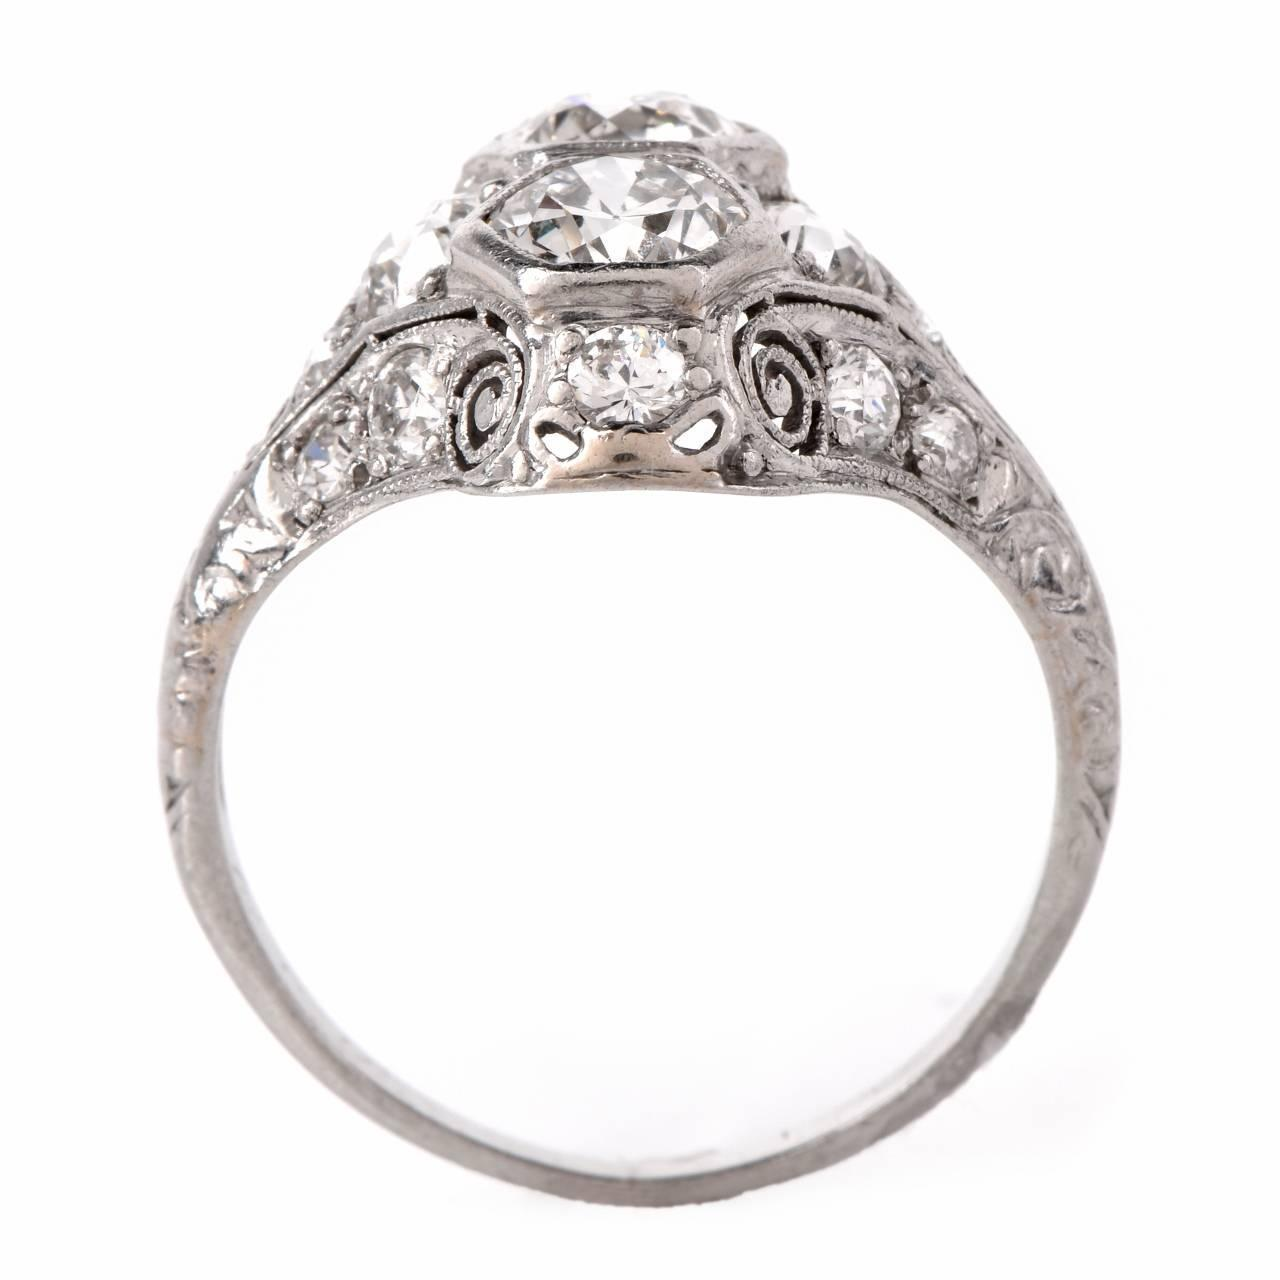 Antique Art Deco Diamond Platinum Filigree Engagement Ring